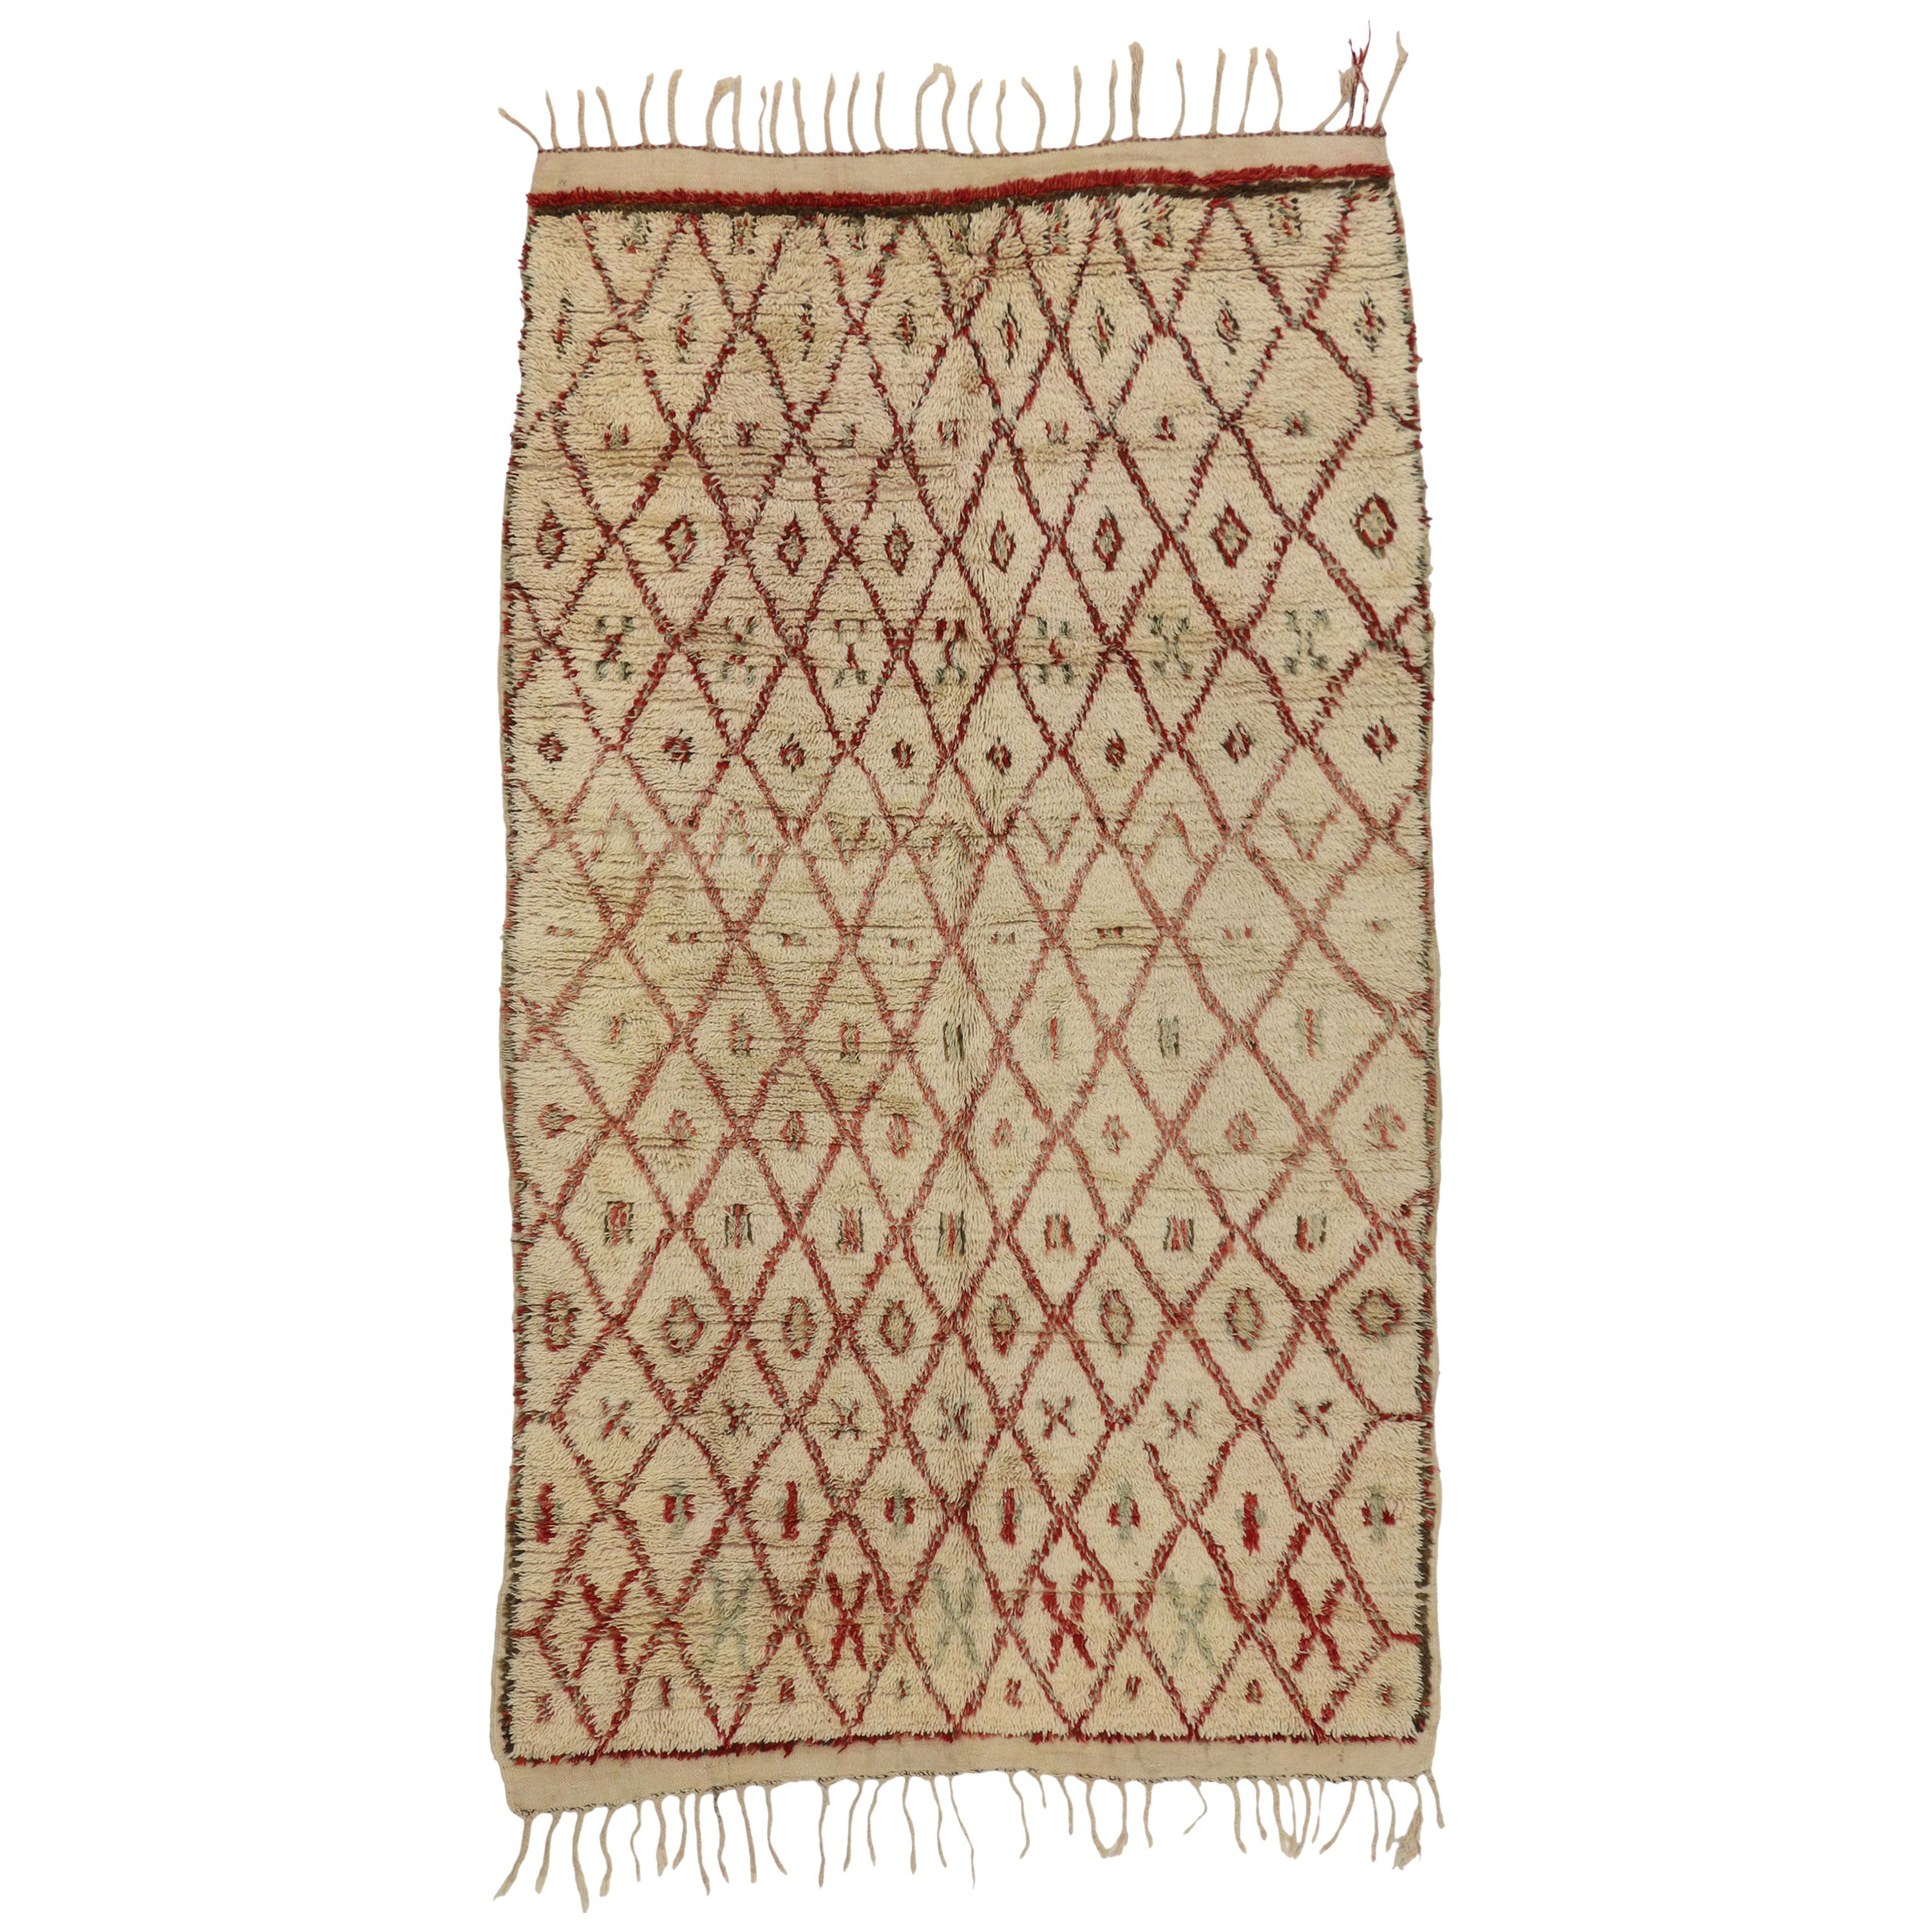 Vintage Berber Moroccan Azilal Rug with Tribal Style, Moroccan Berber Carpet